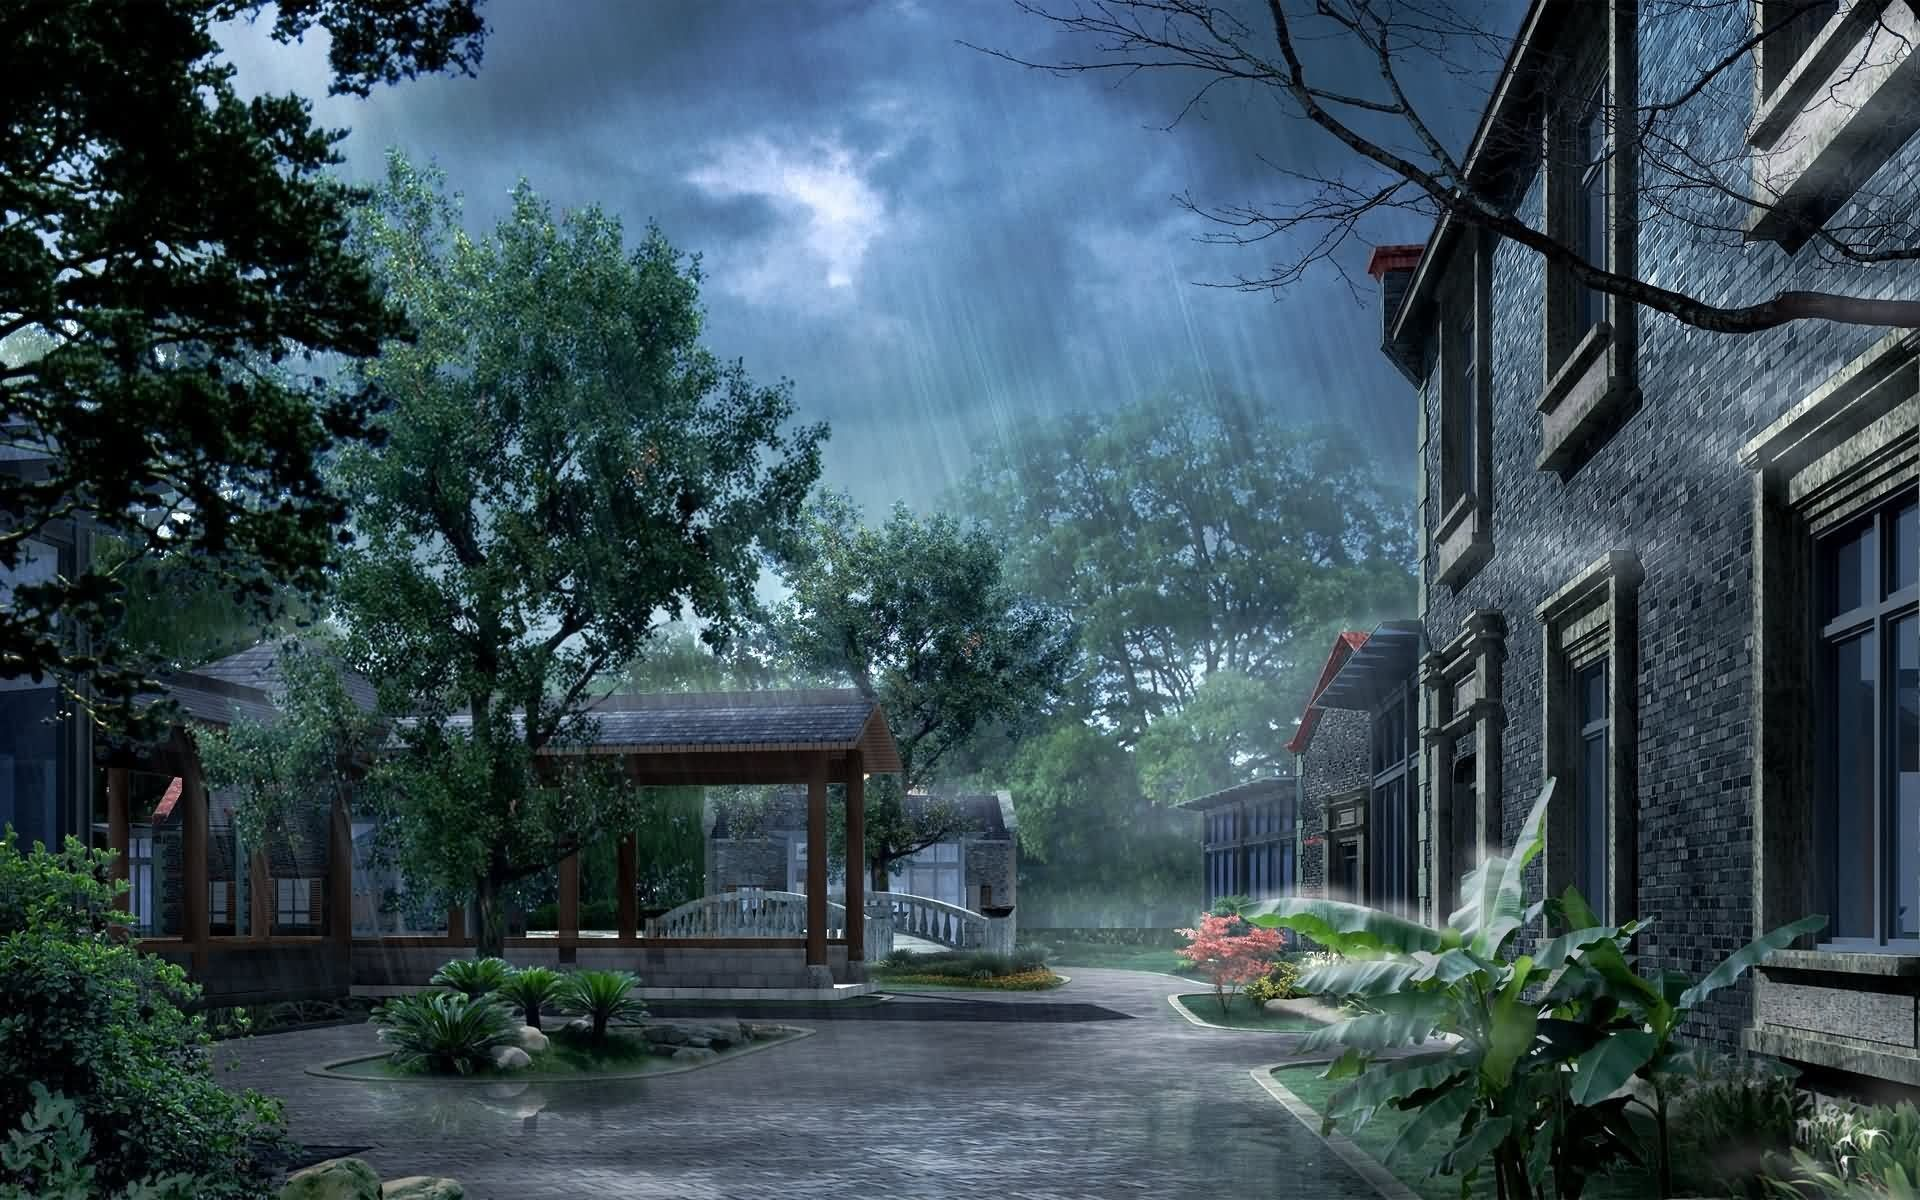 HD Weather Wallpaper